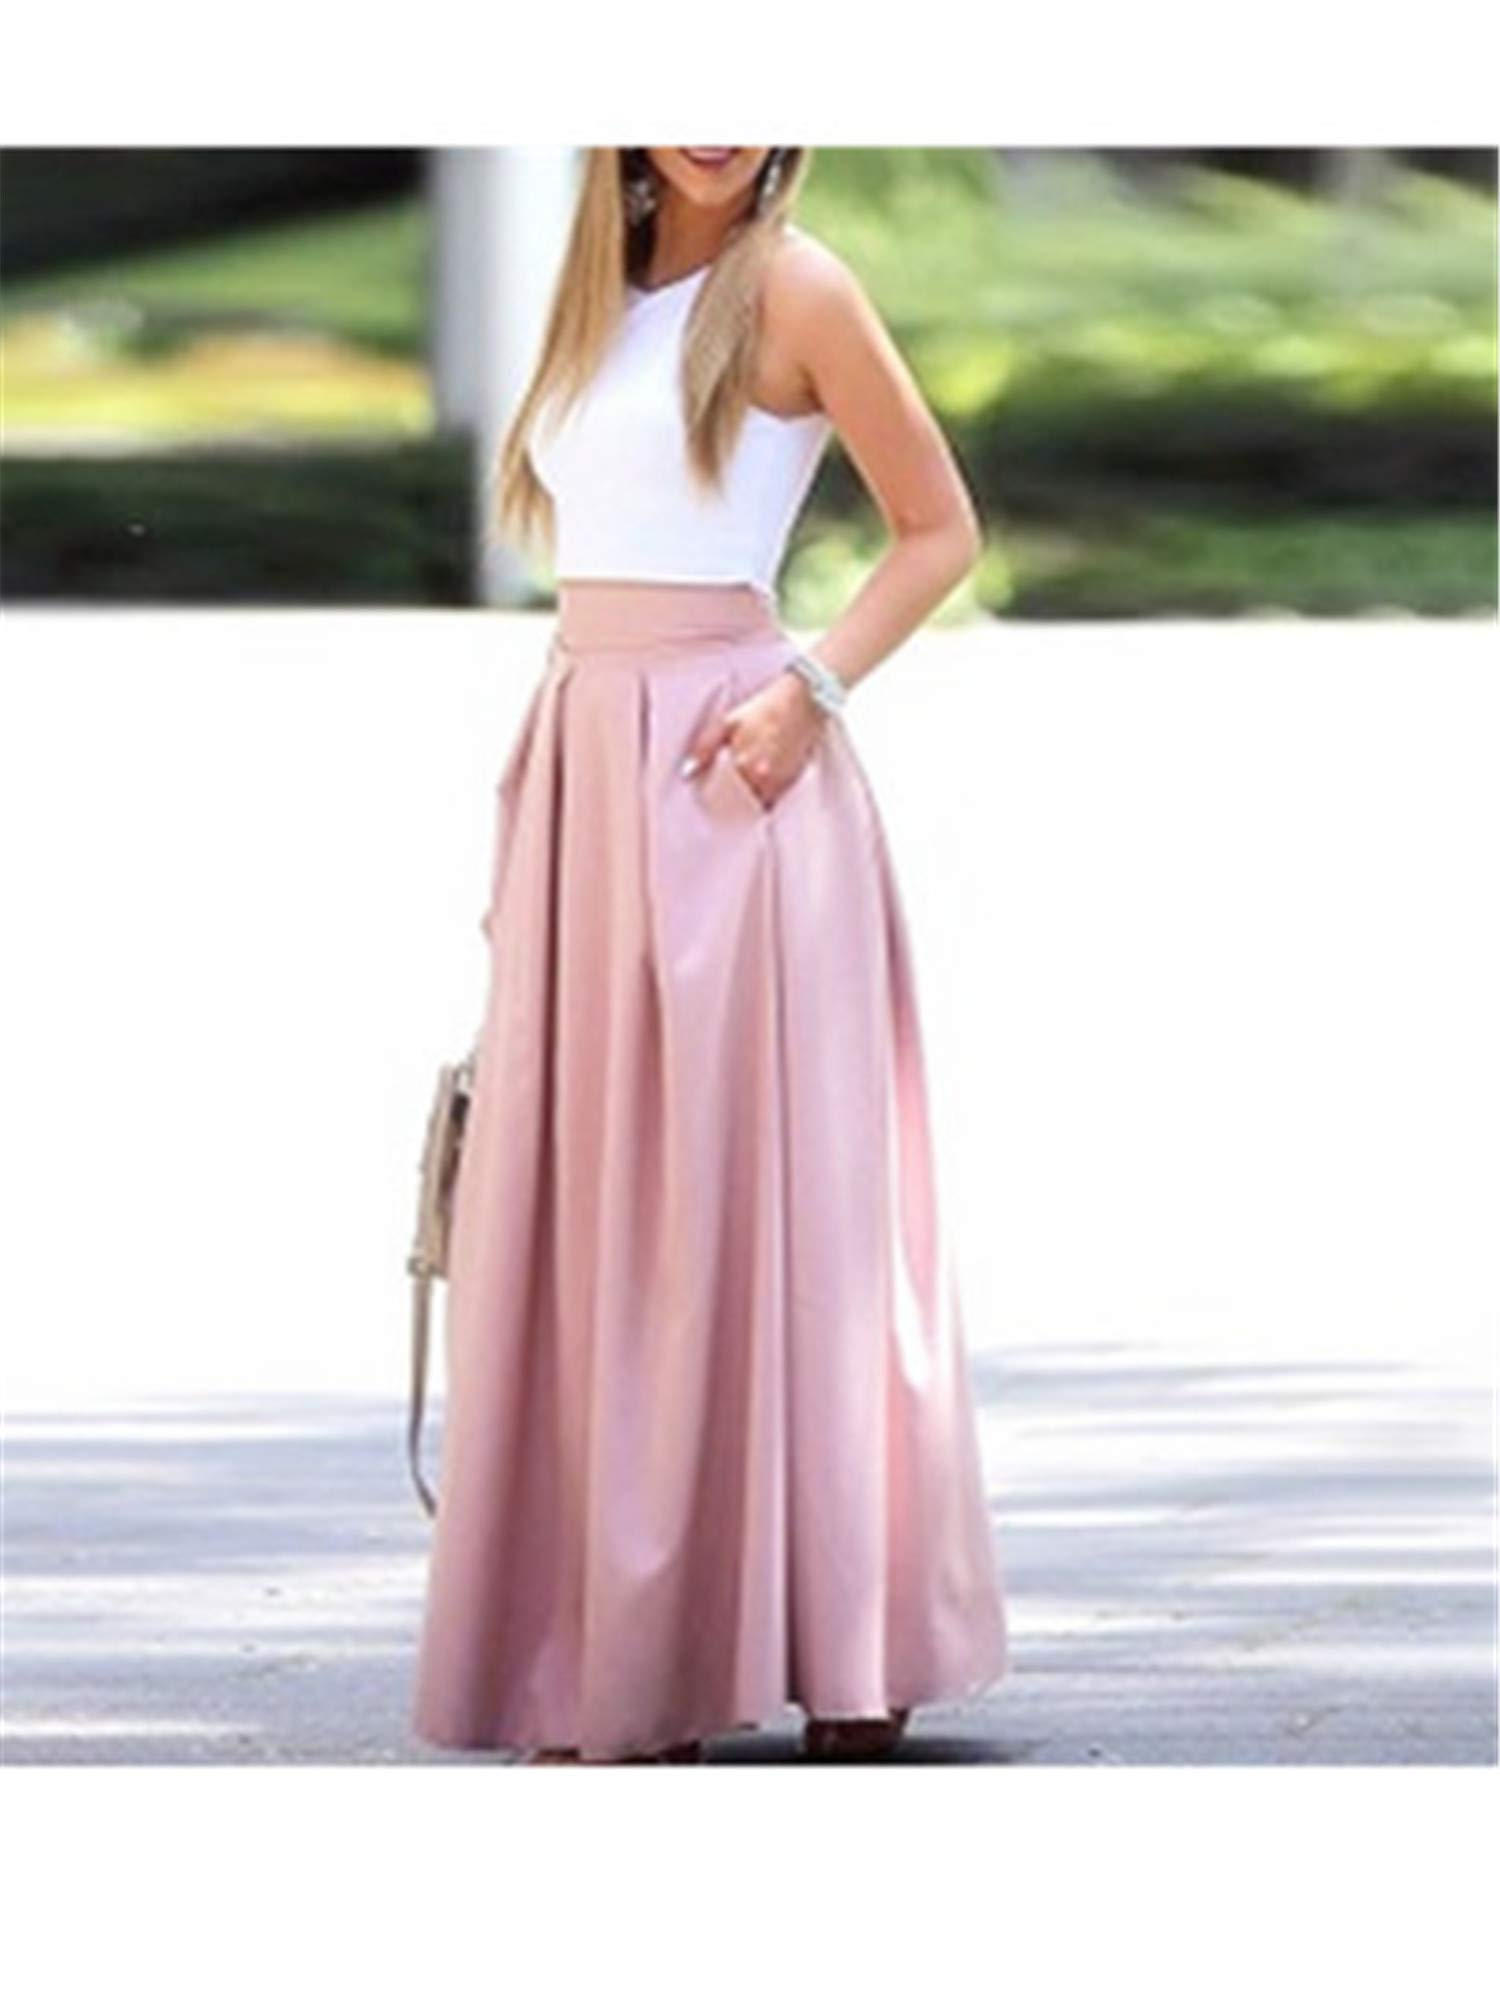 Women Two-Piece Suit Set Female Sleeveless Cropped Top & Pleated Maxi Skirt Sets